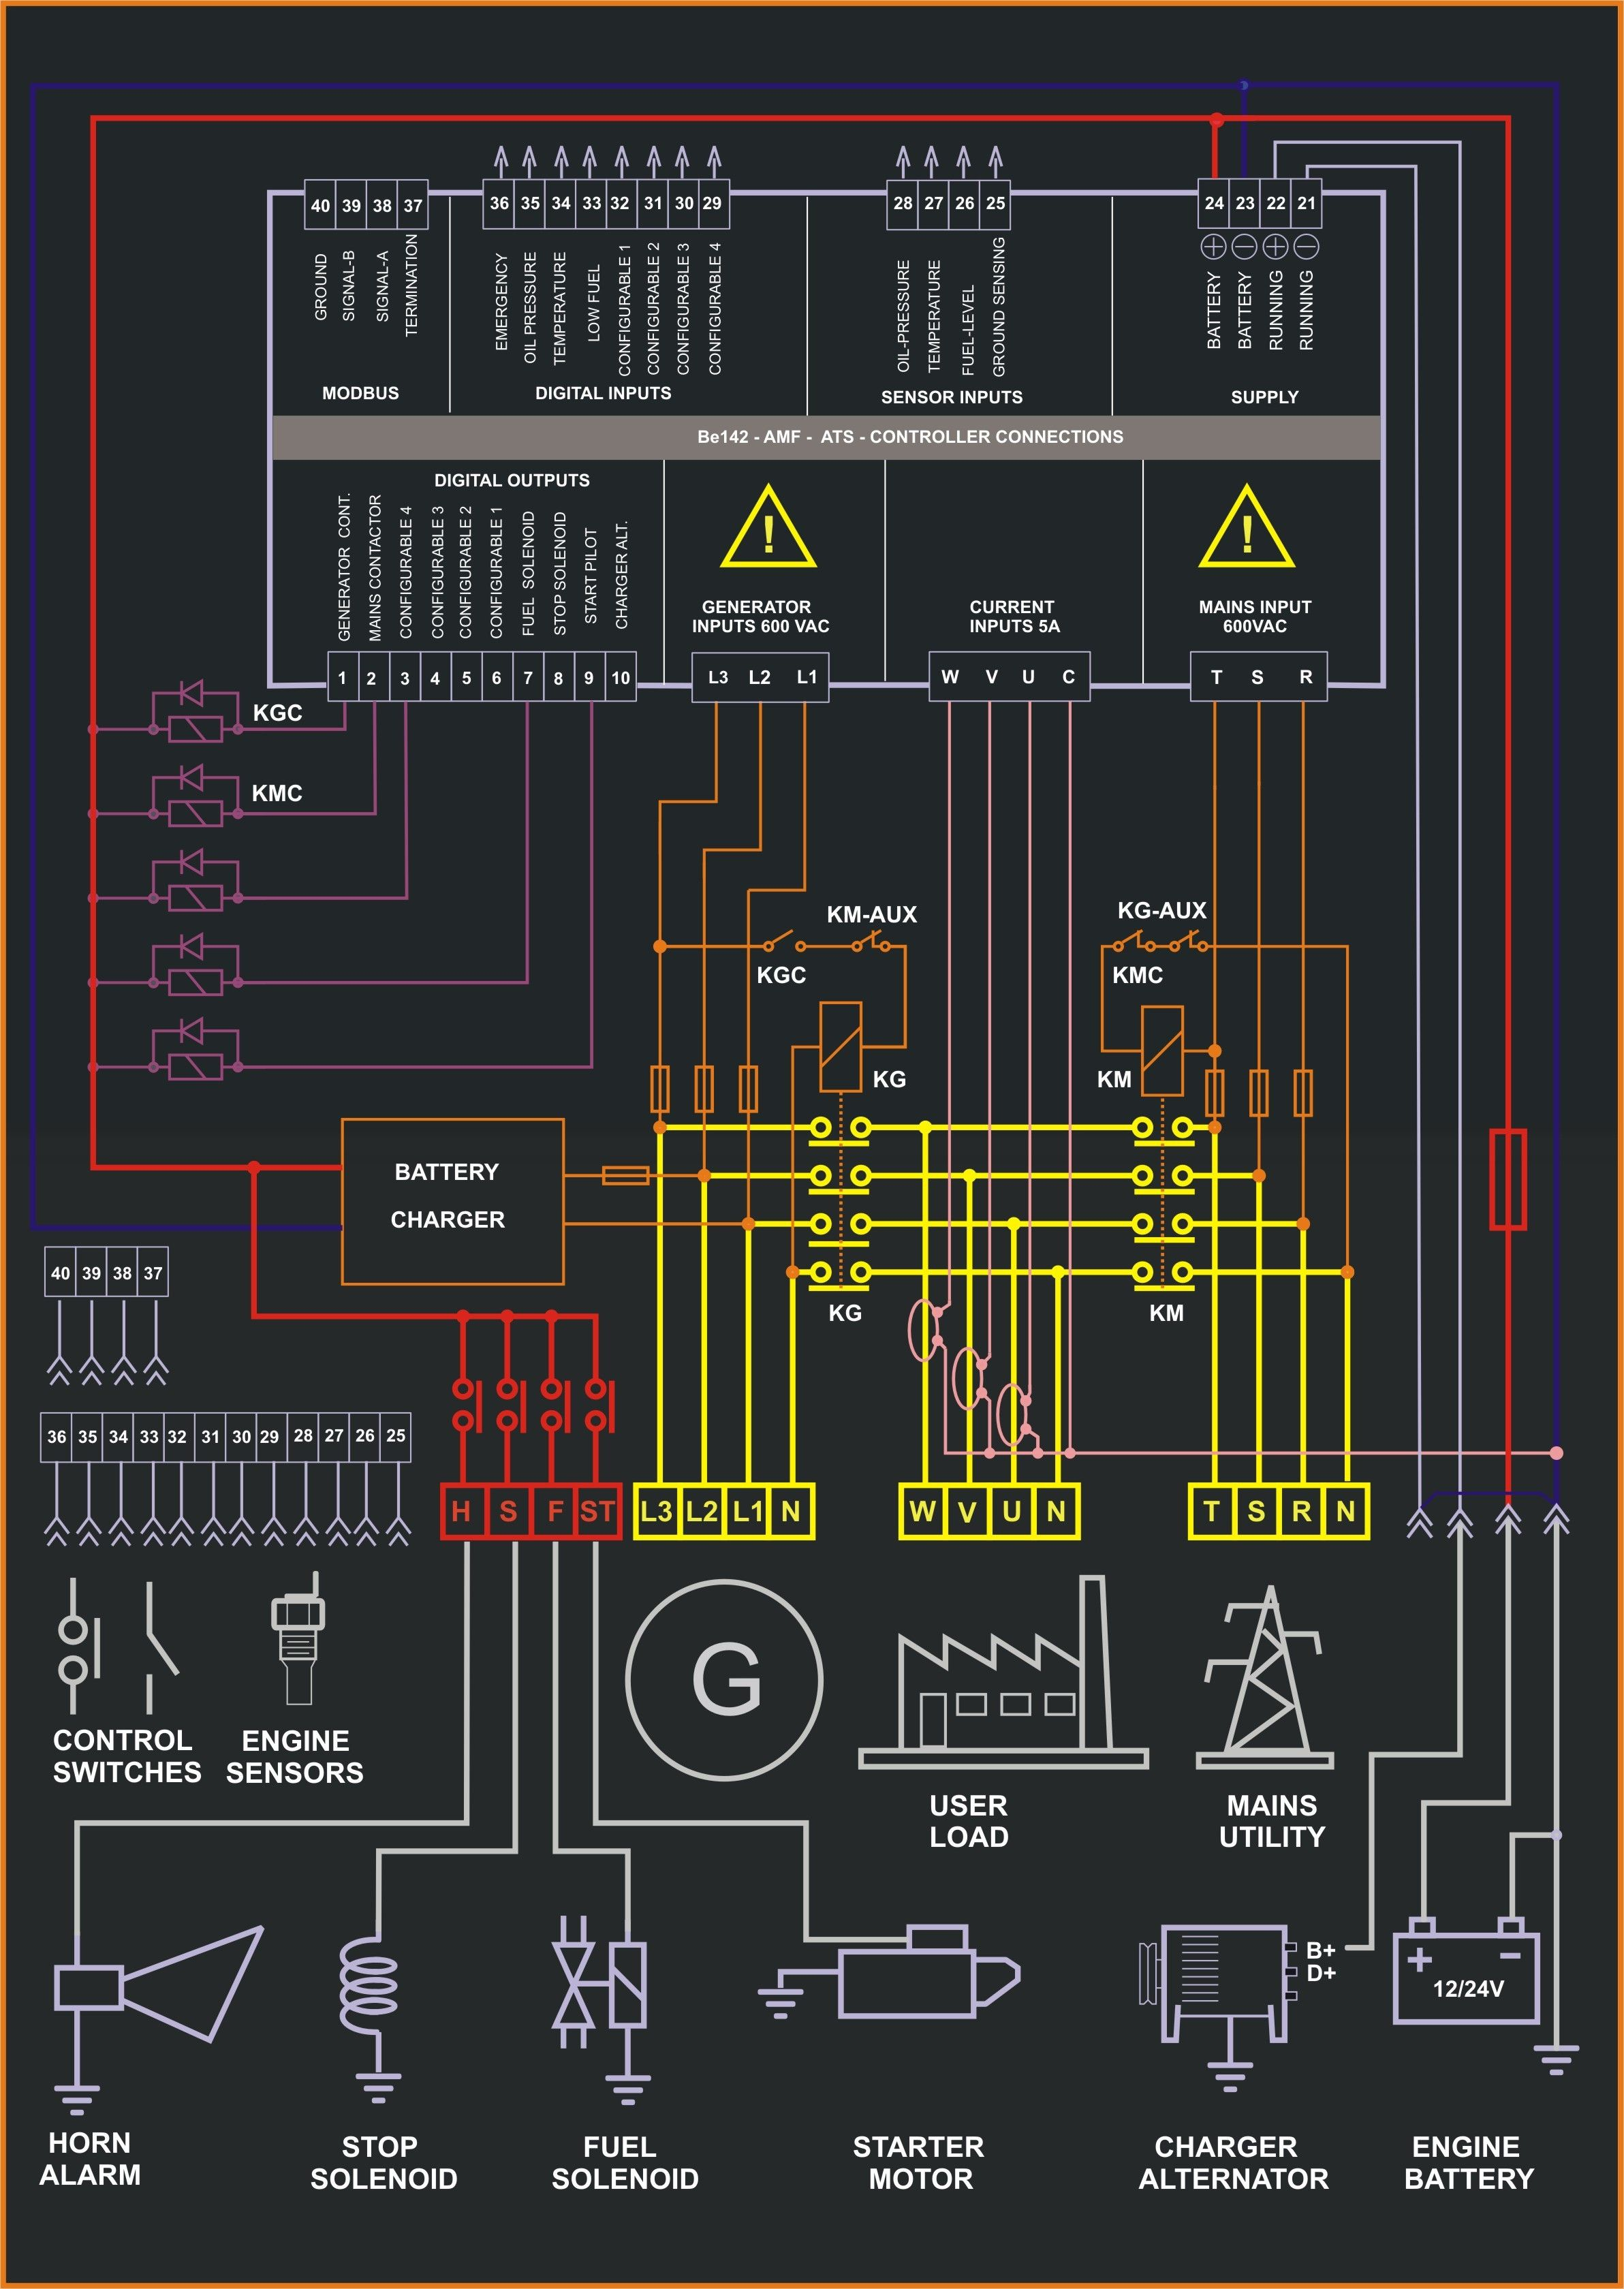 panel wiring diagram pdf wiring diagram expert ats panel wiring diagram free download [ 2384 x 3360 Pixel ]